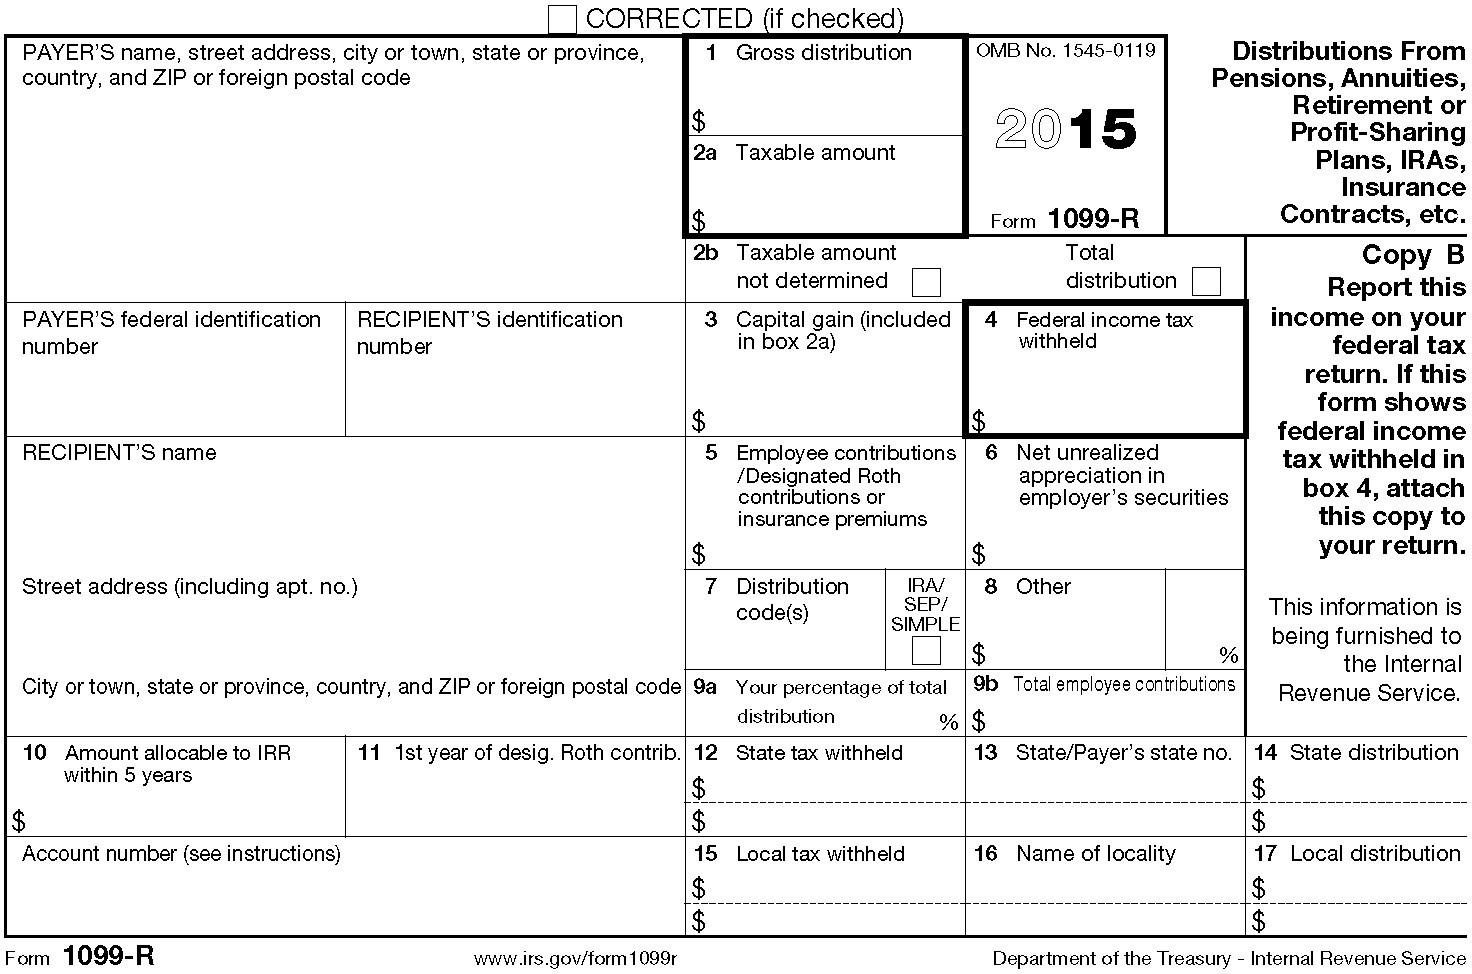 sample 1099-r form filled out  Form 10-R - Wikipedia